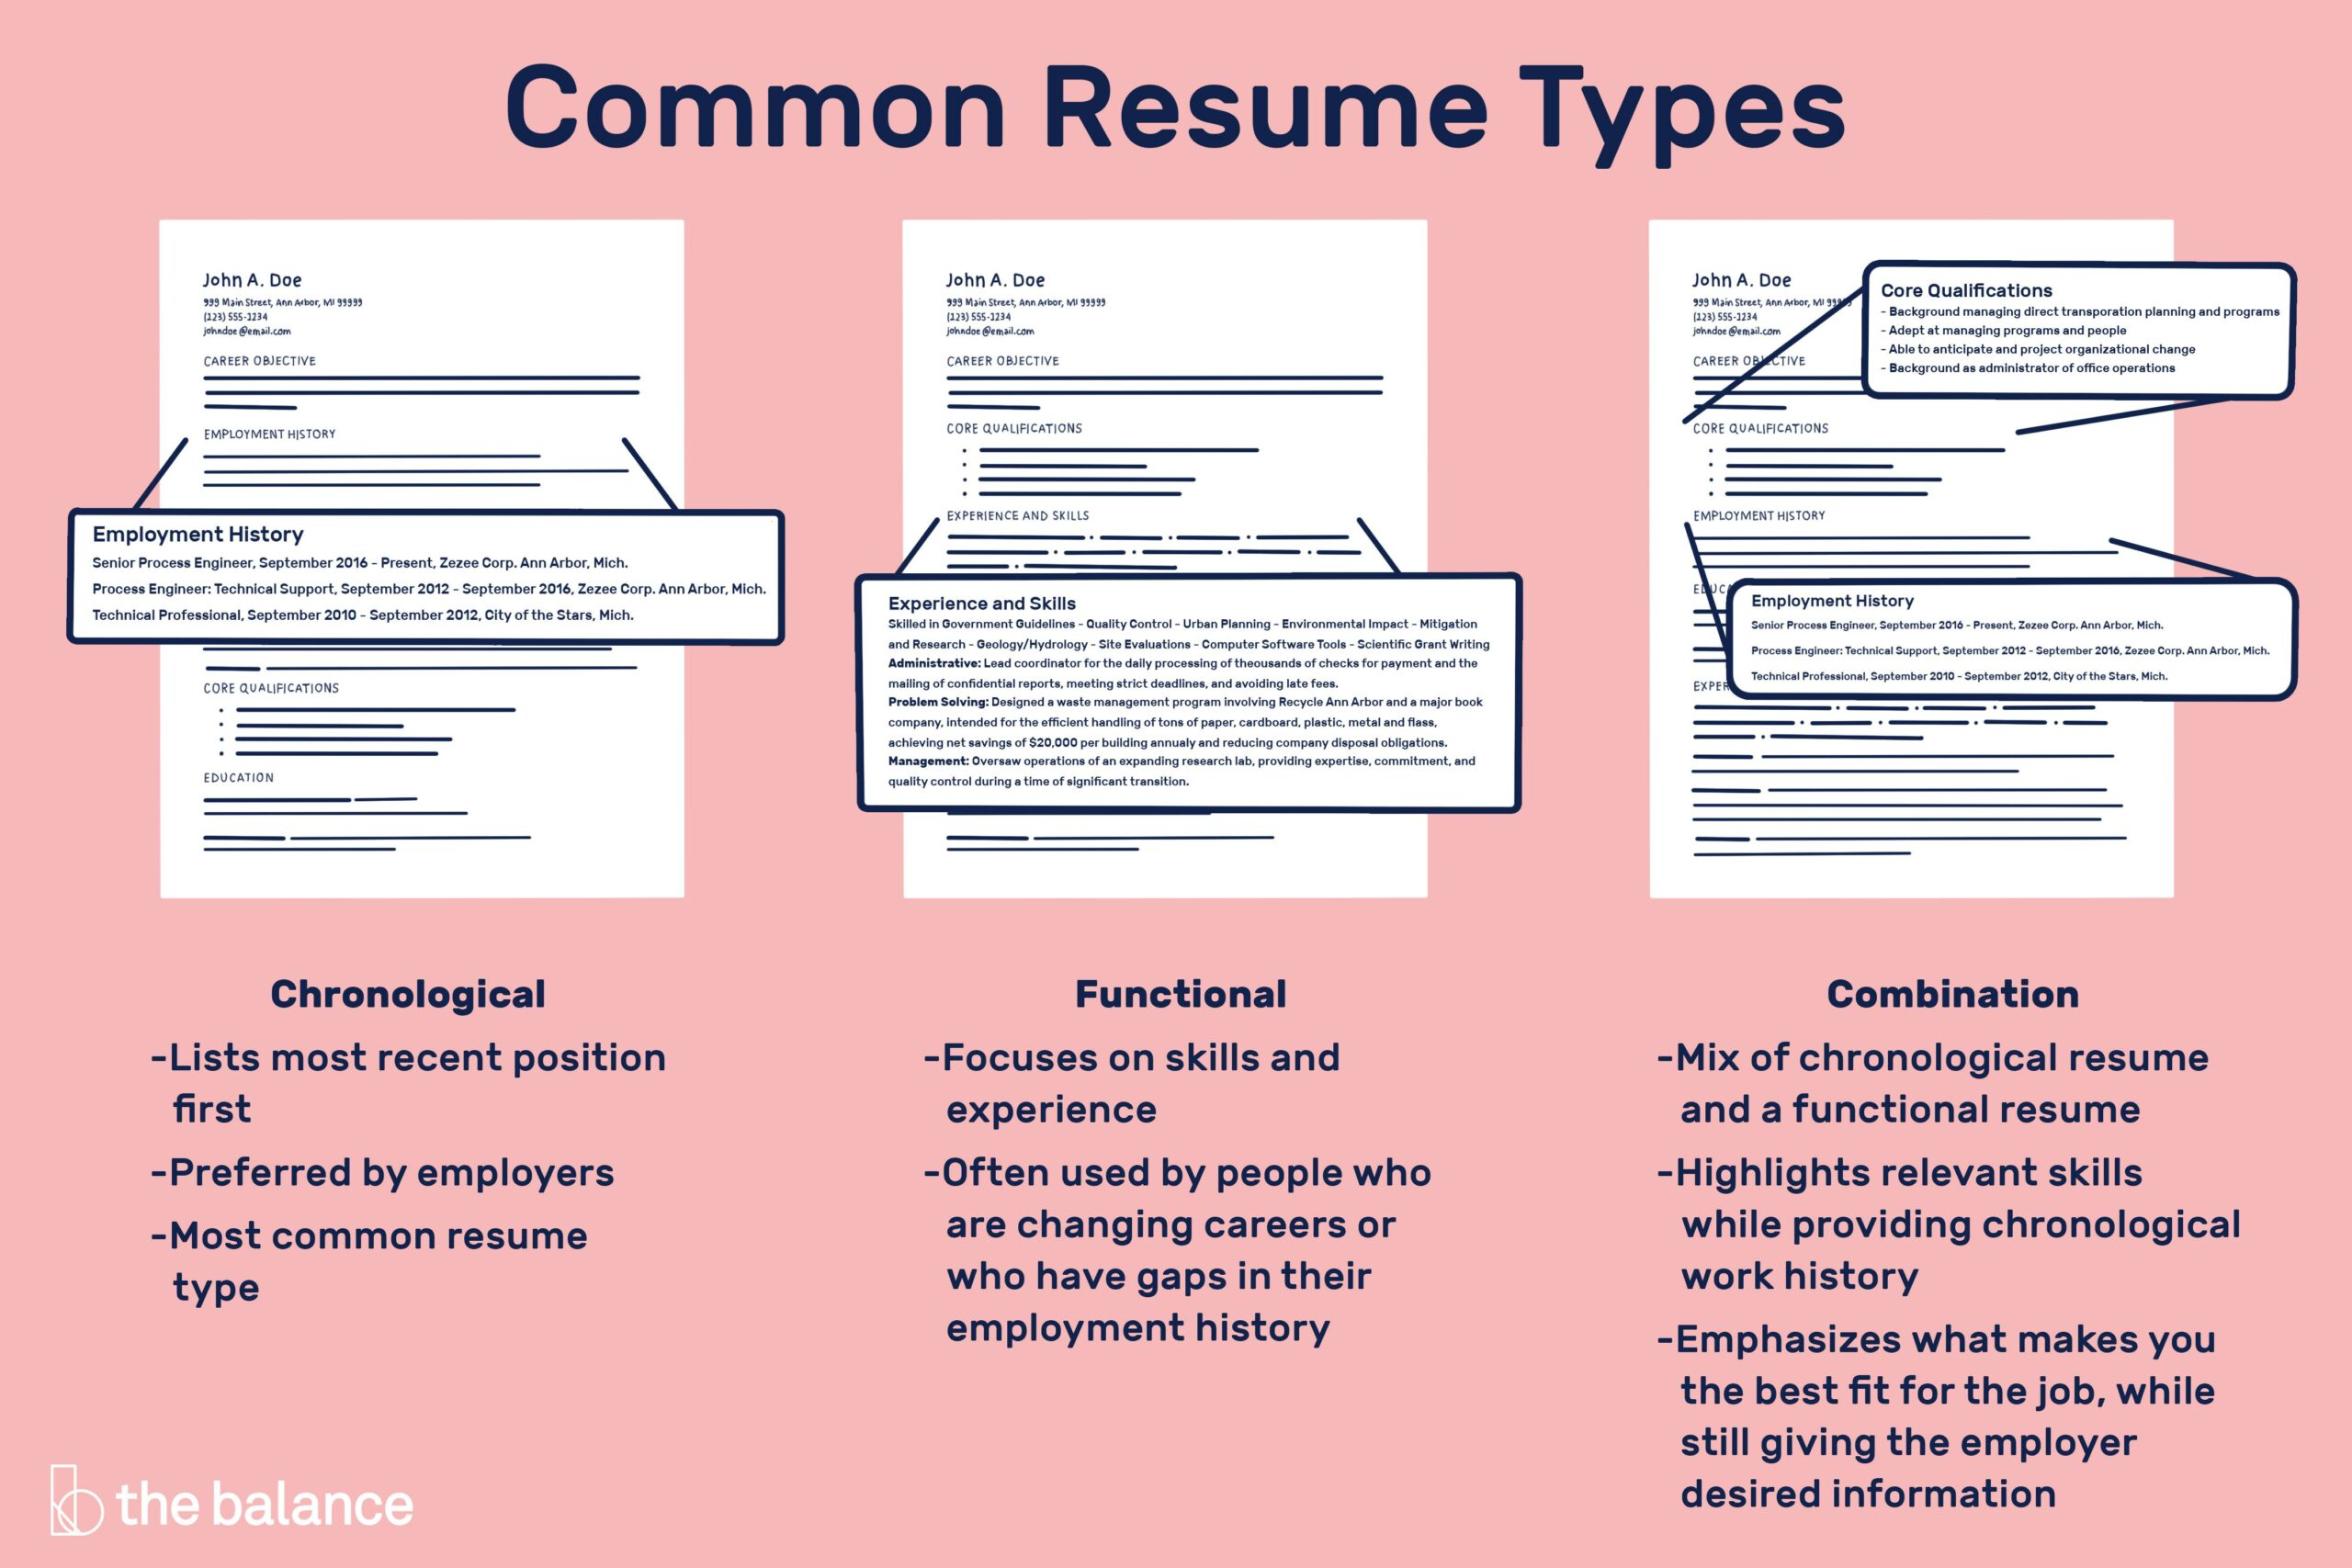 different resume types with only one job history chronological functional combination Resume Resume With Only One Job History